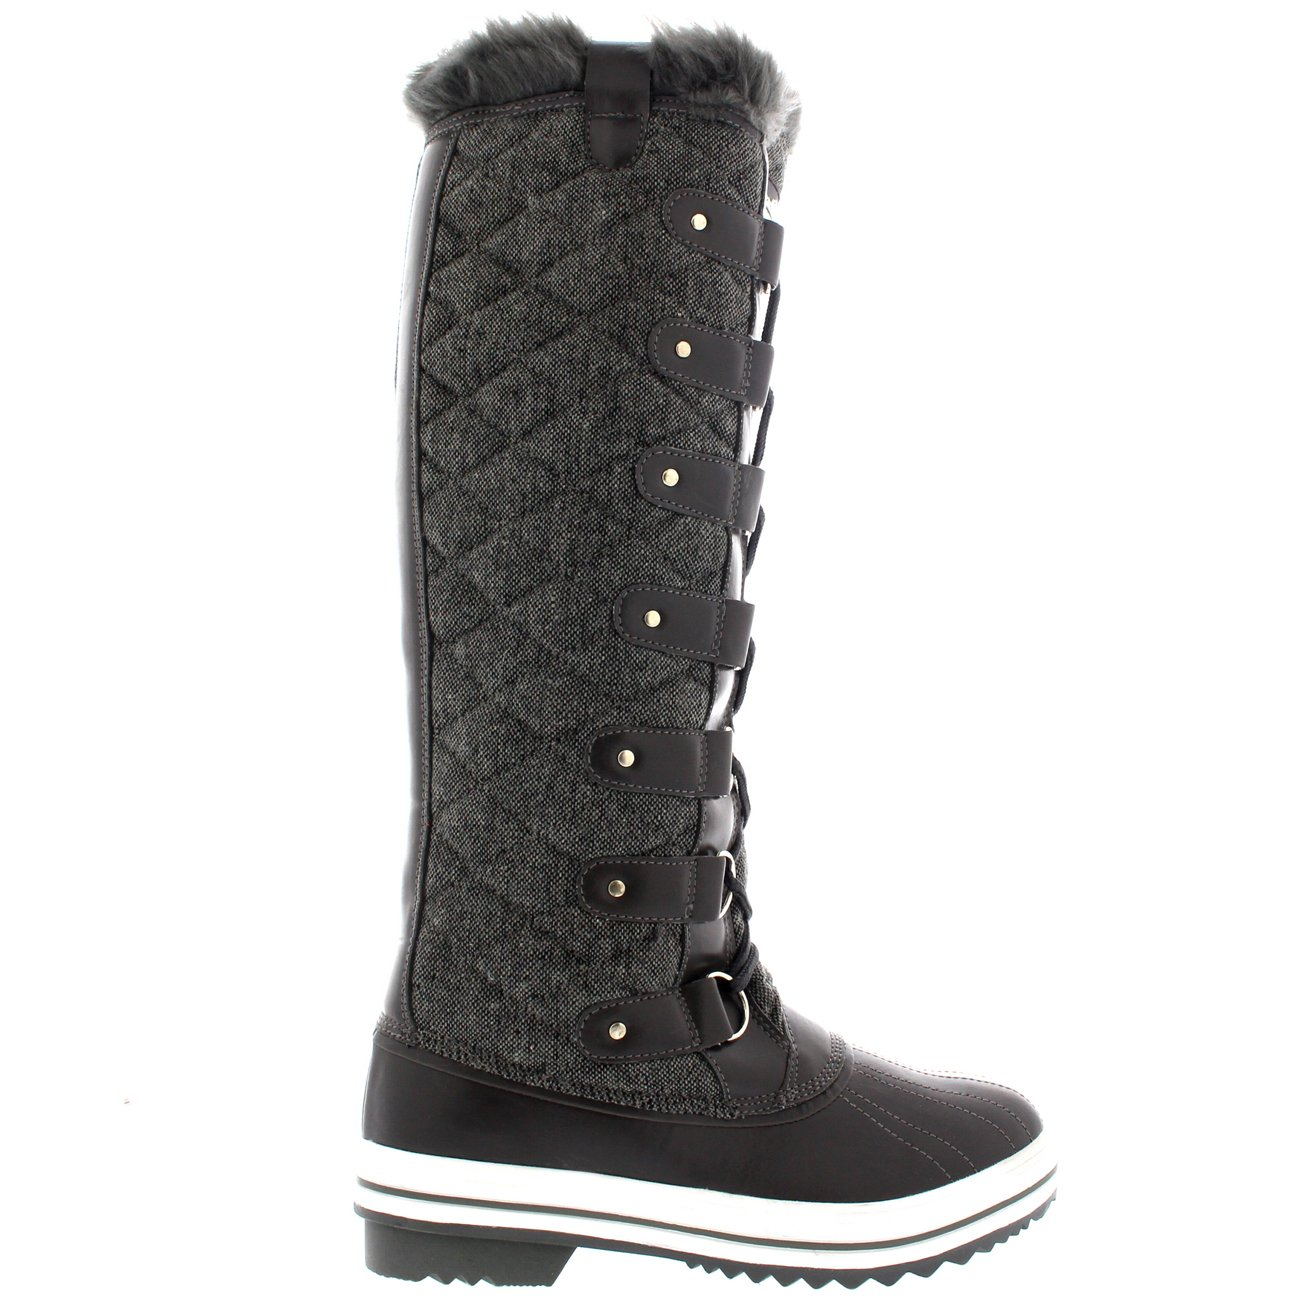 6e08754e602 POLAR Womens Quilted Knee High Duck Rain Waterproof Muck Snow Winter Boots  - 10 - GRT43 YC0054  Amazon.co.uk  Shoes   Bags